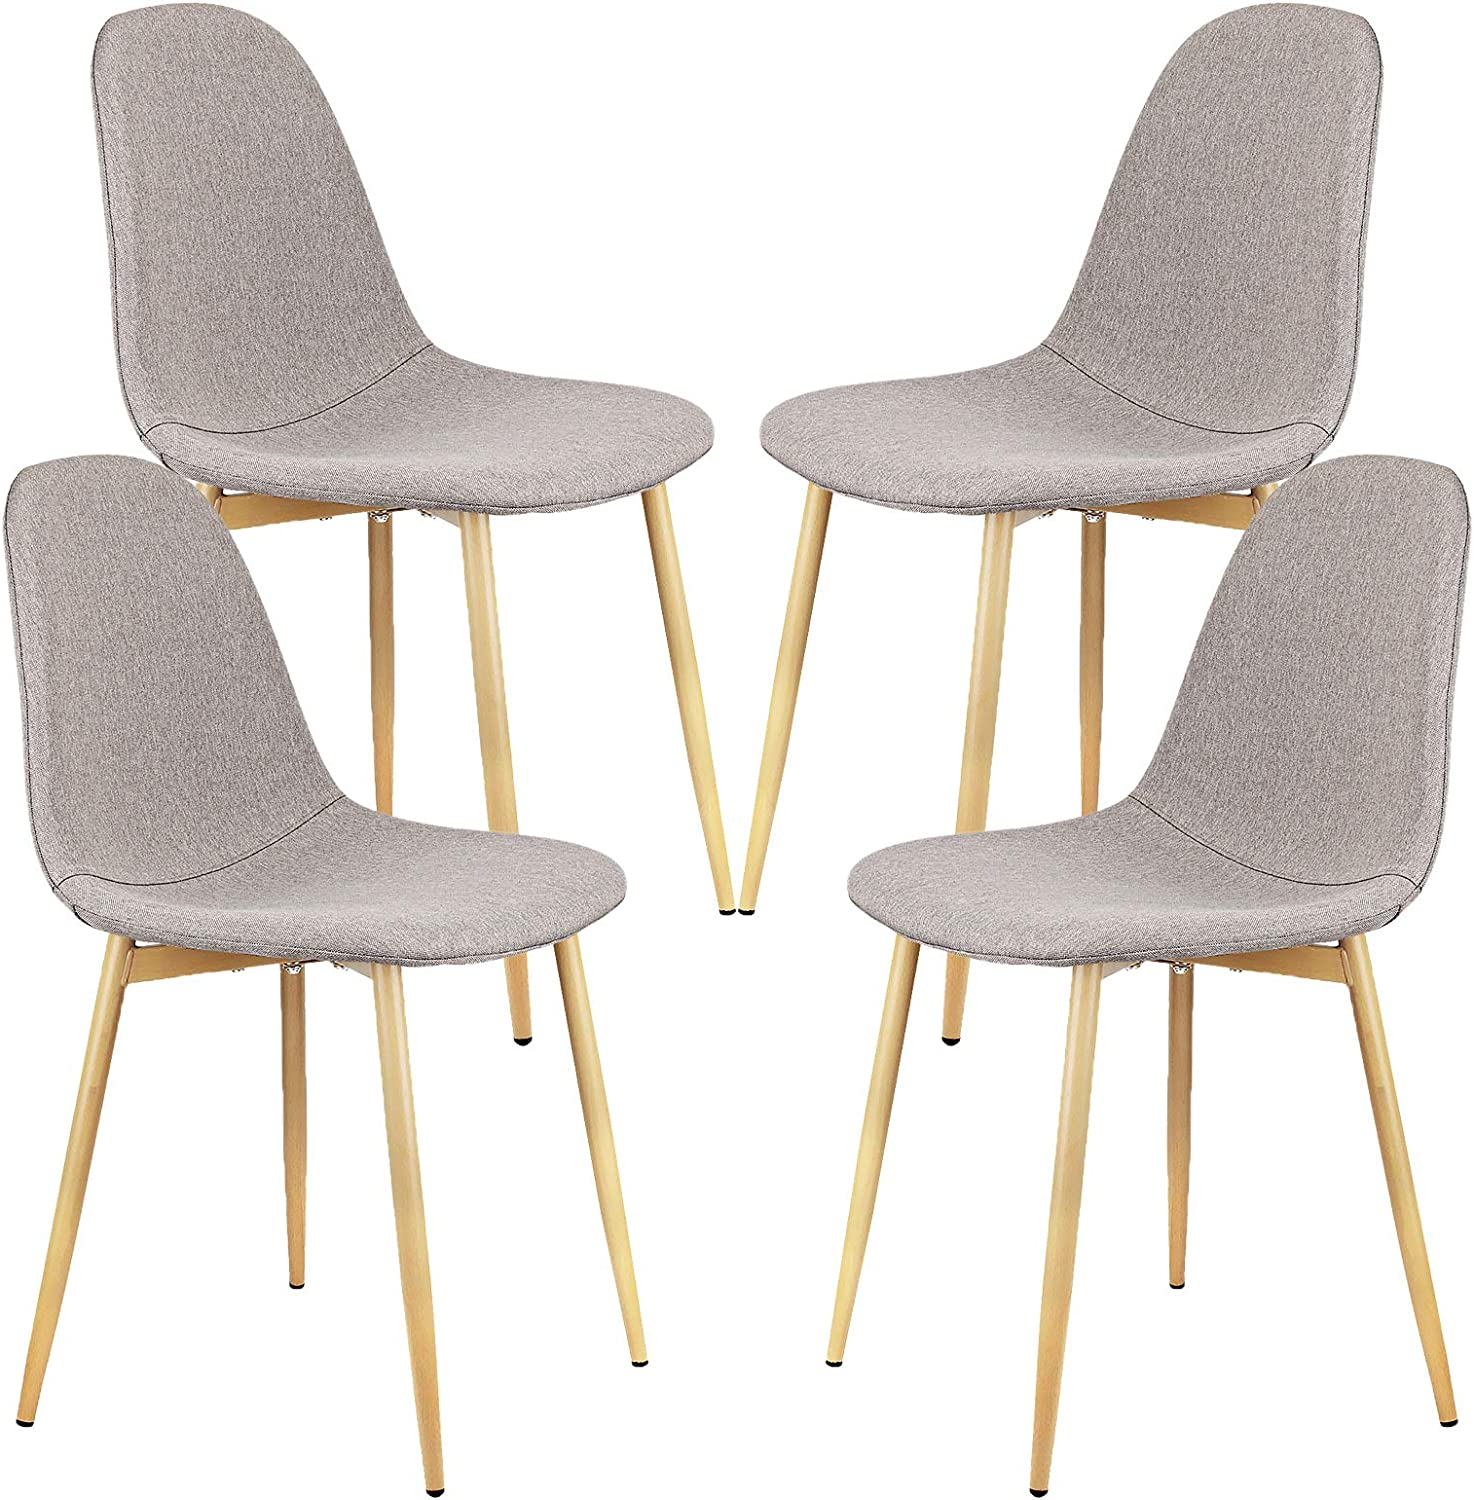 NEW ARRIVAL YJCfurniture Dining 送料無料 一部地域を除く Chairs Set of 4 Side Century Modern Chai Mid